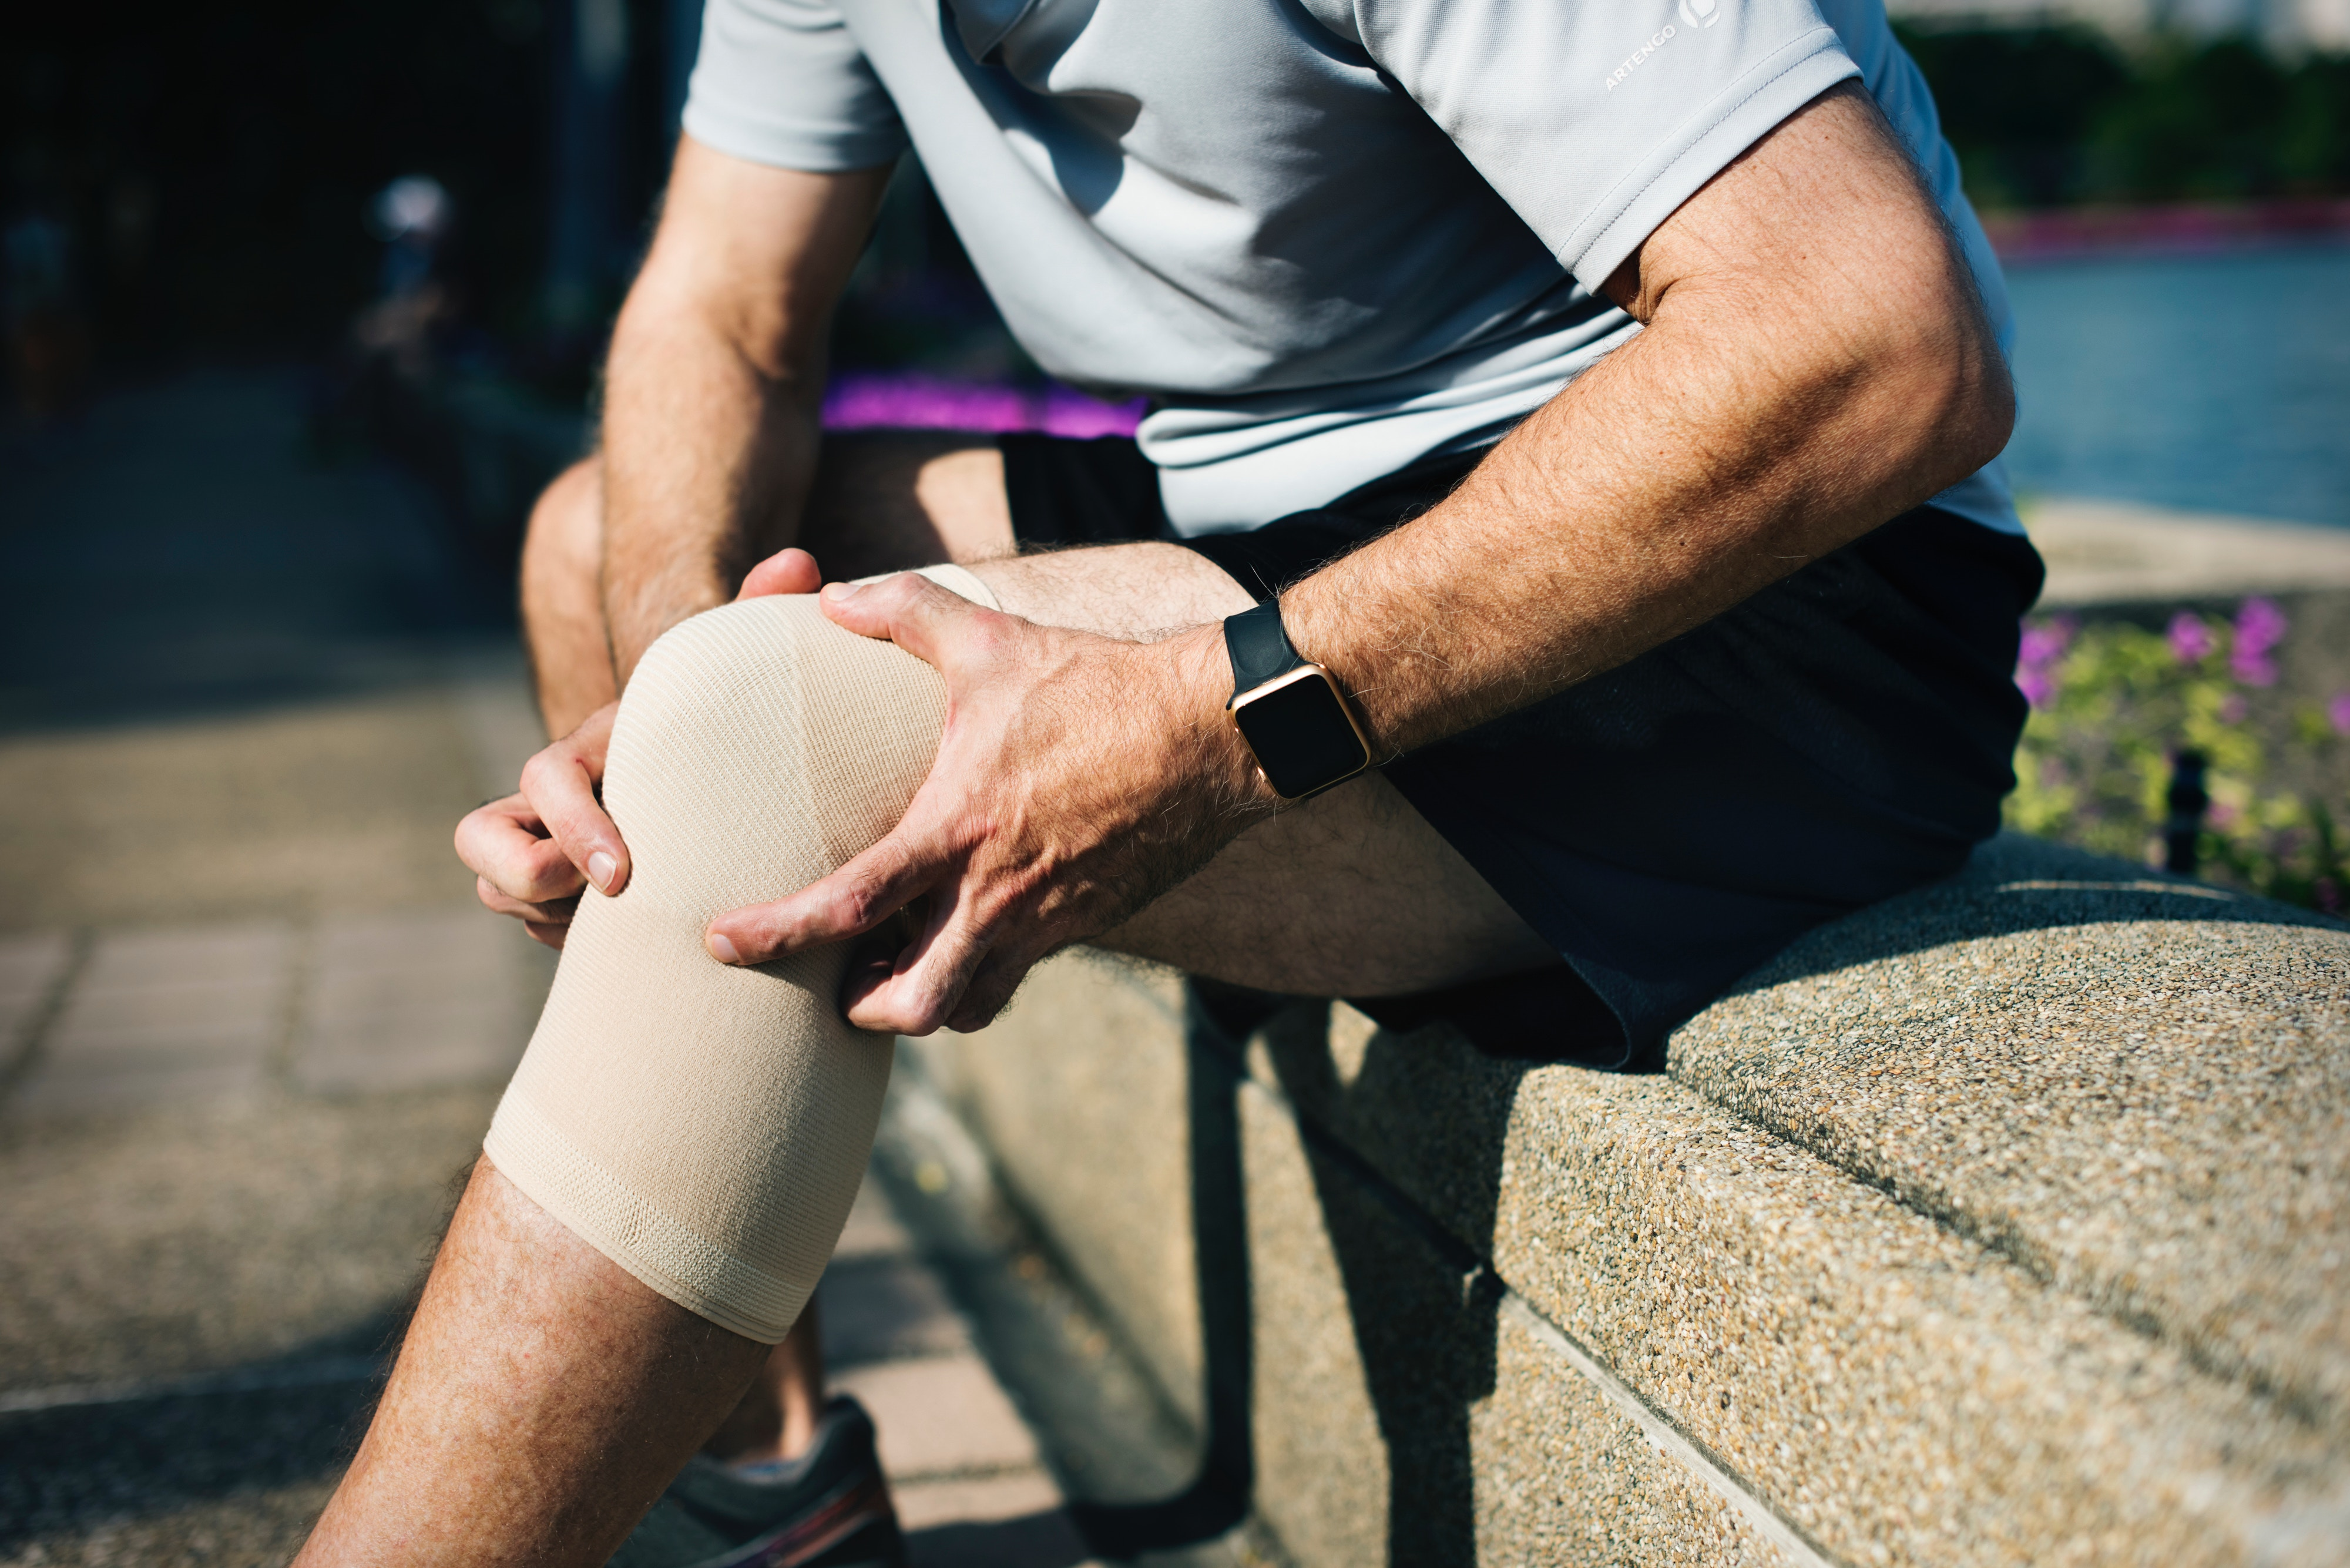 Conditions that cause knee pain